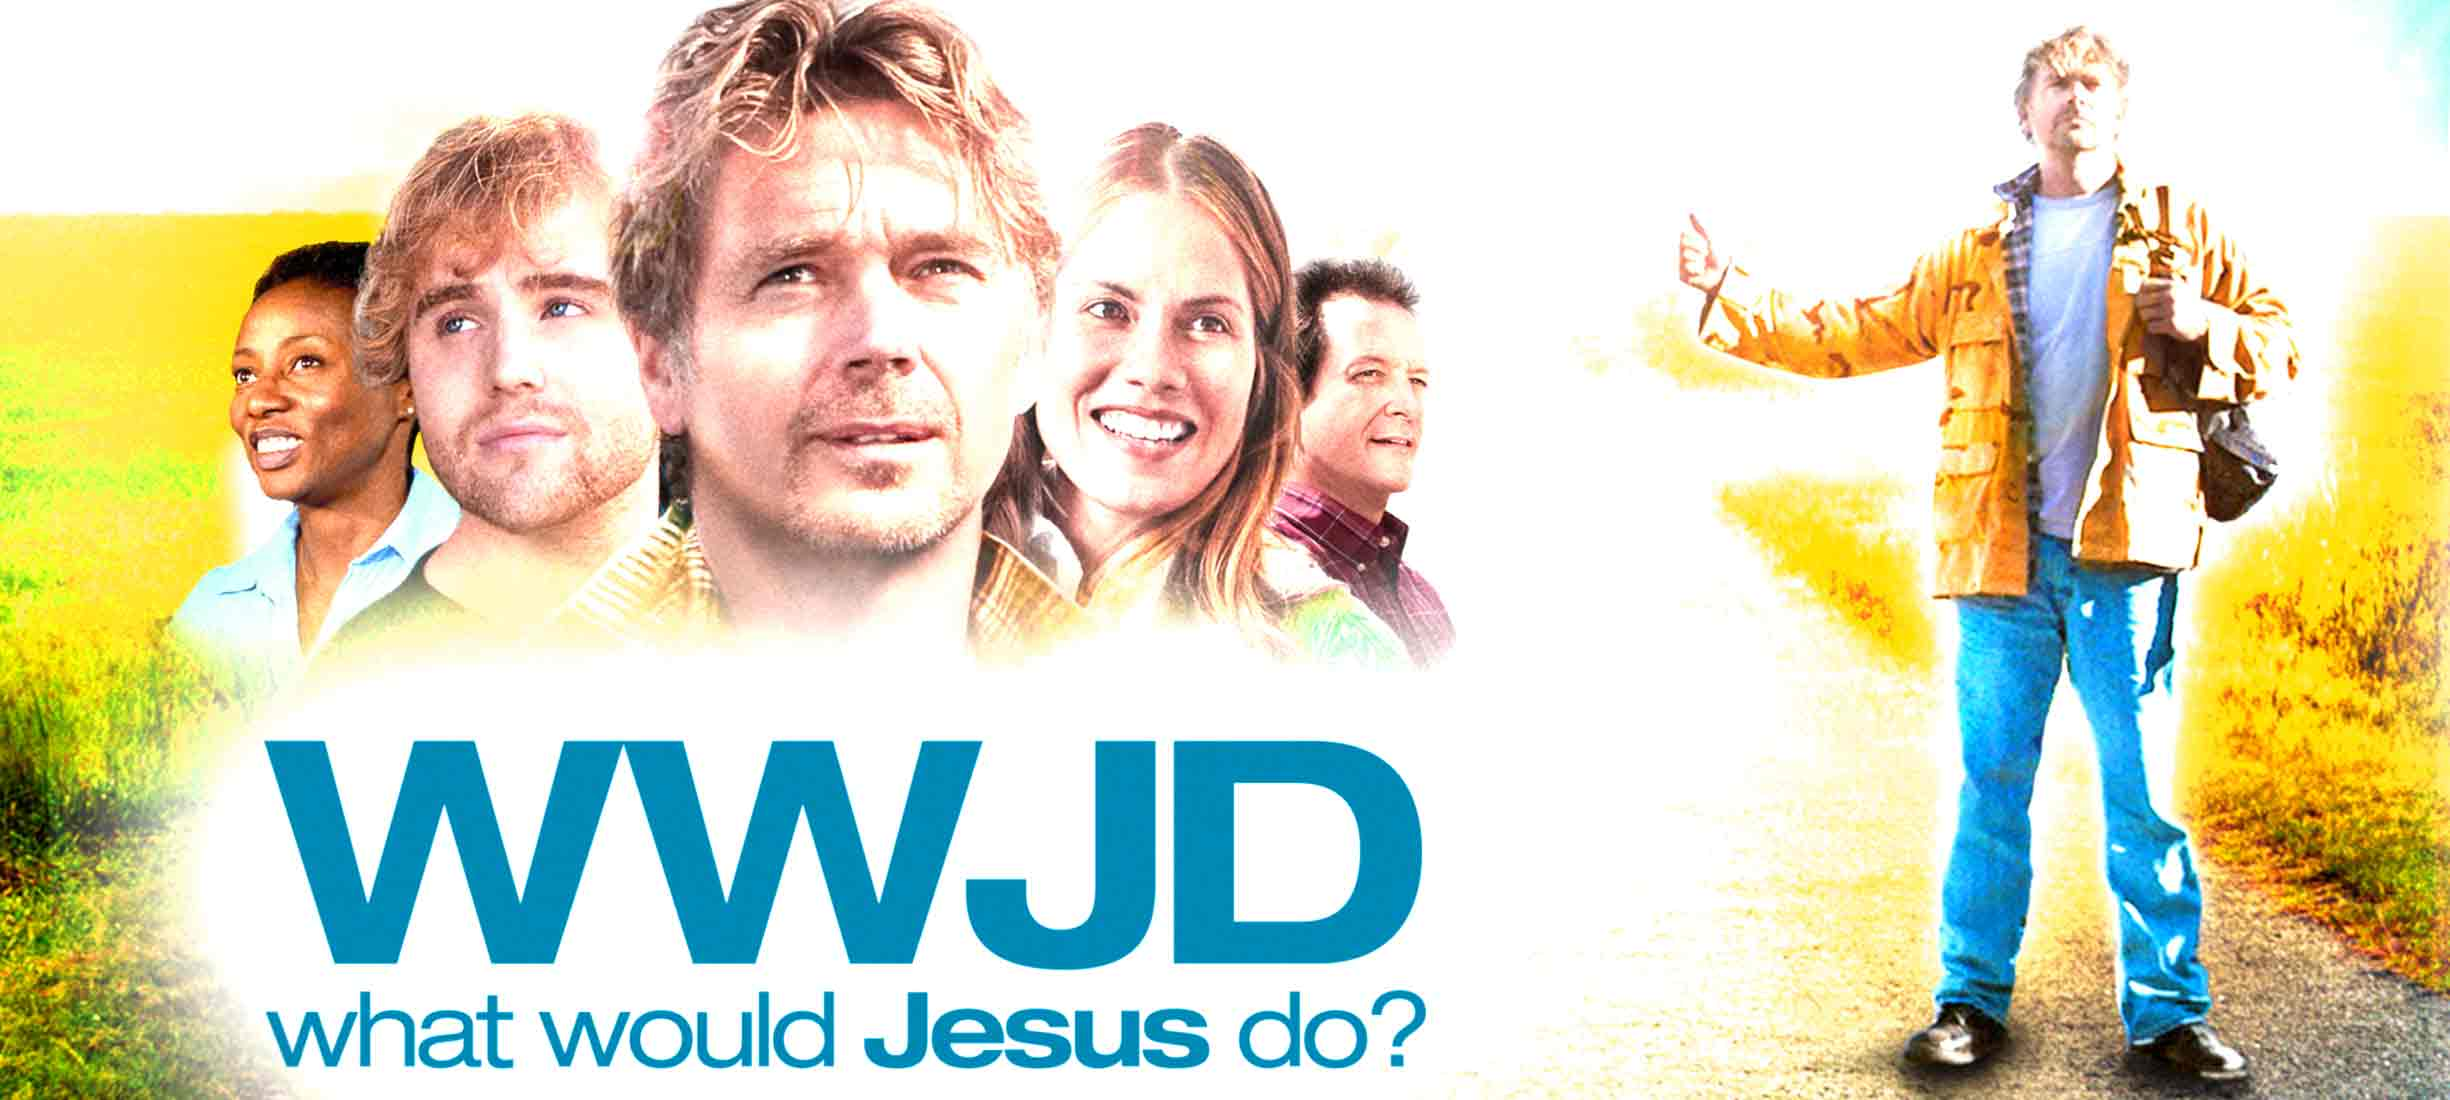 What Would Jesus Do? - Official Trailer